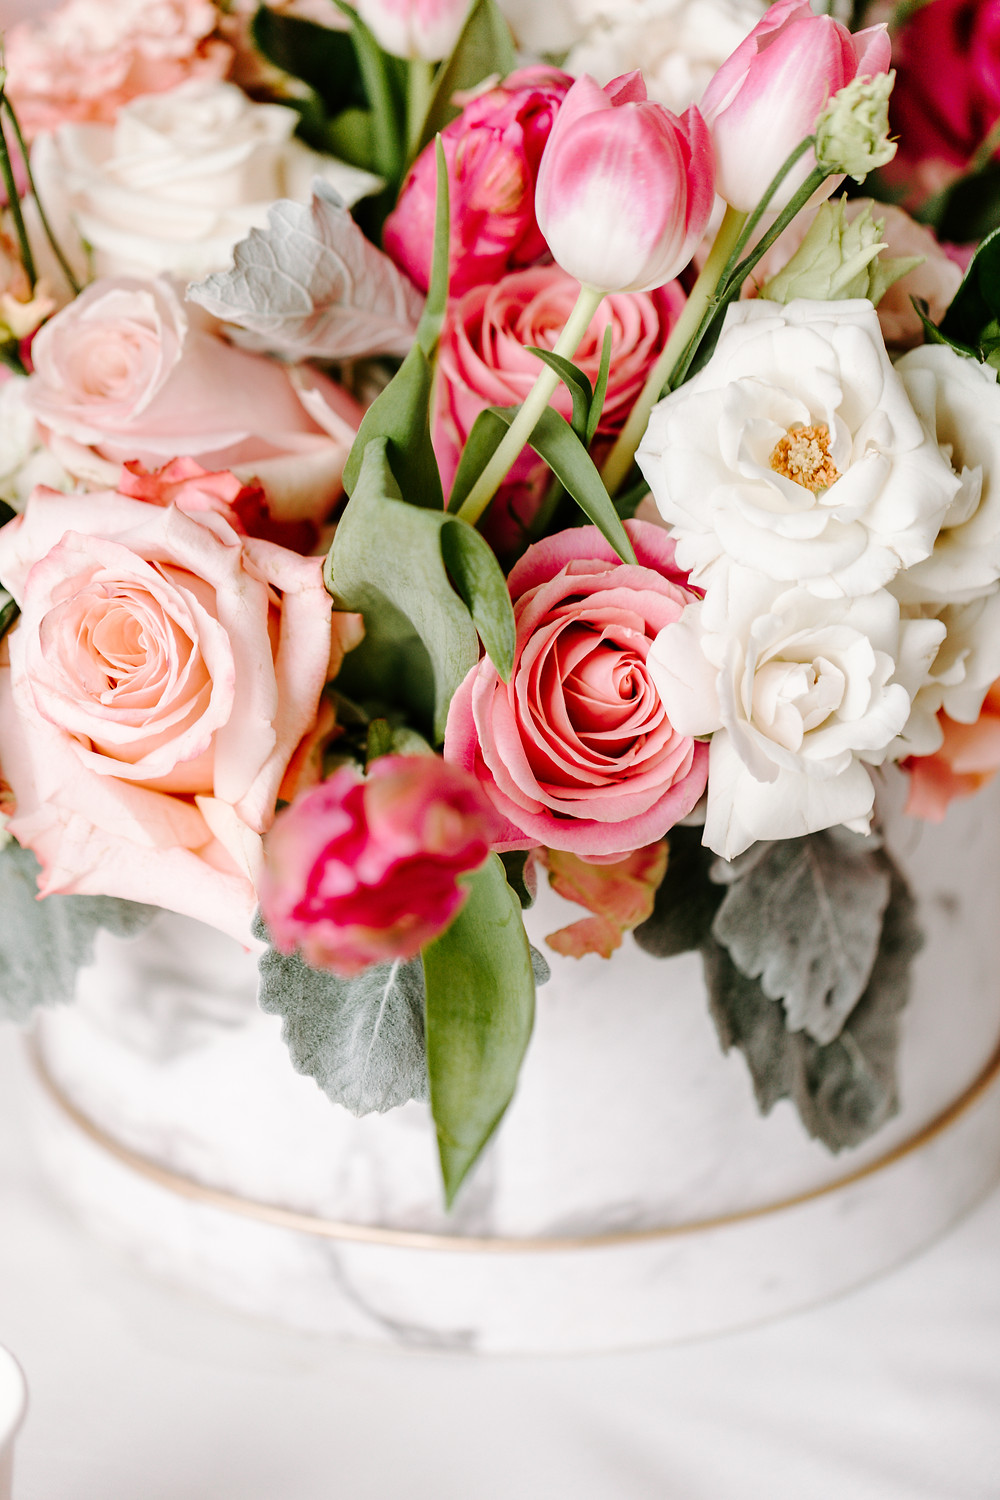 Close up of flowers: garden roses, tulips, stock, lisianthus